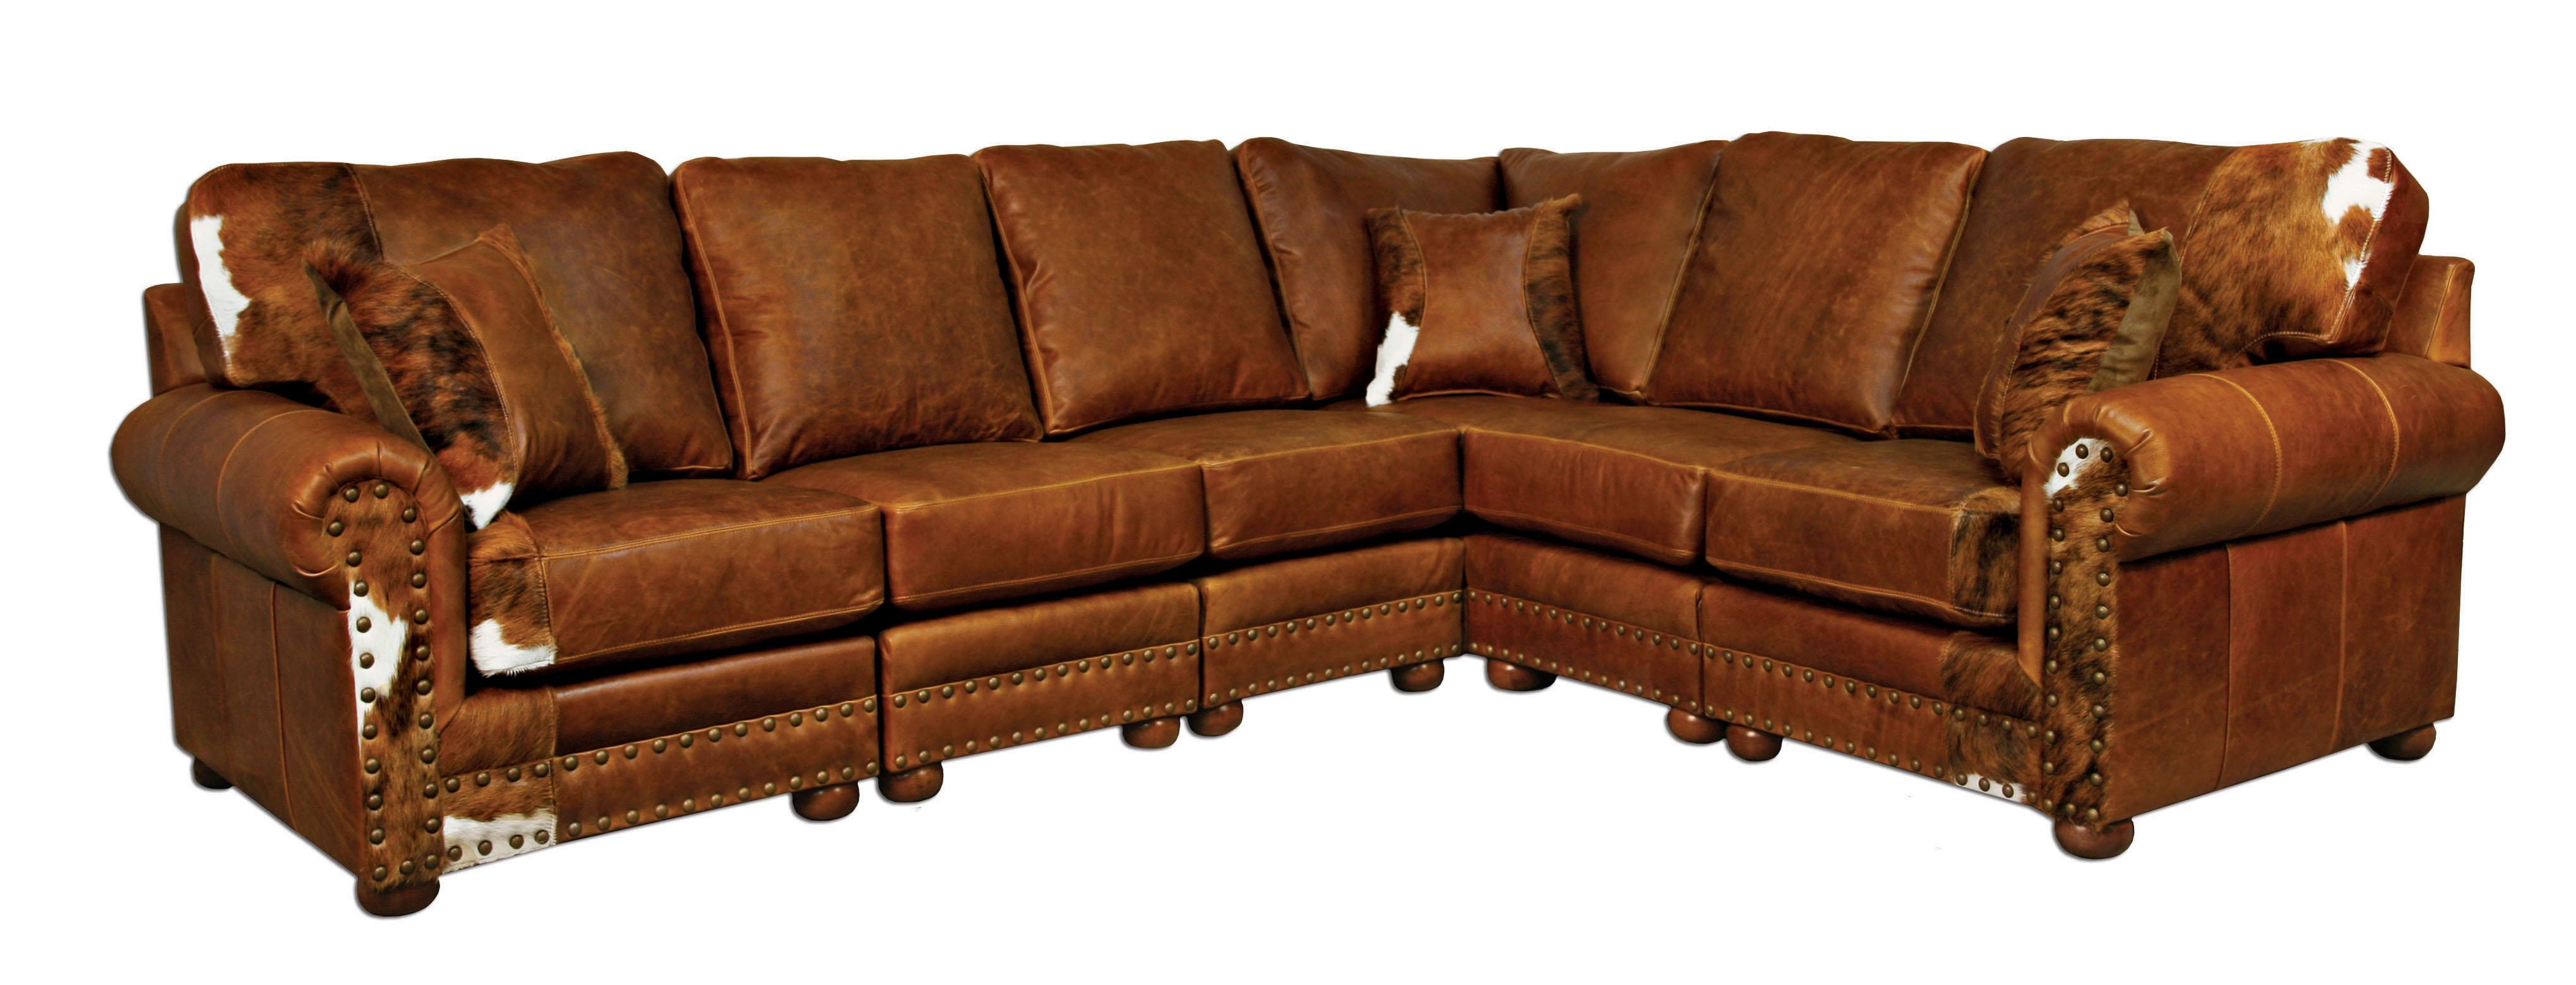 Gunslinger Sectional Sofa